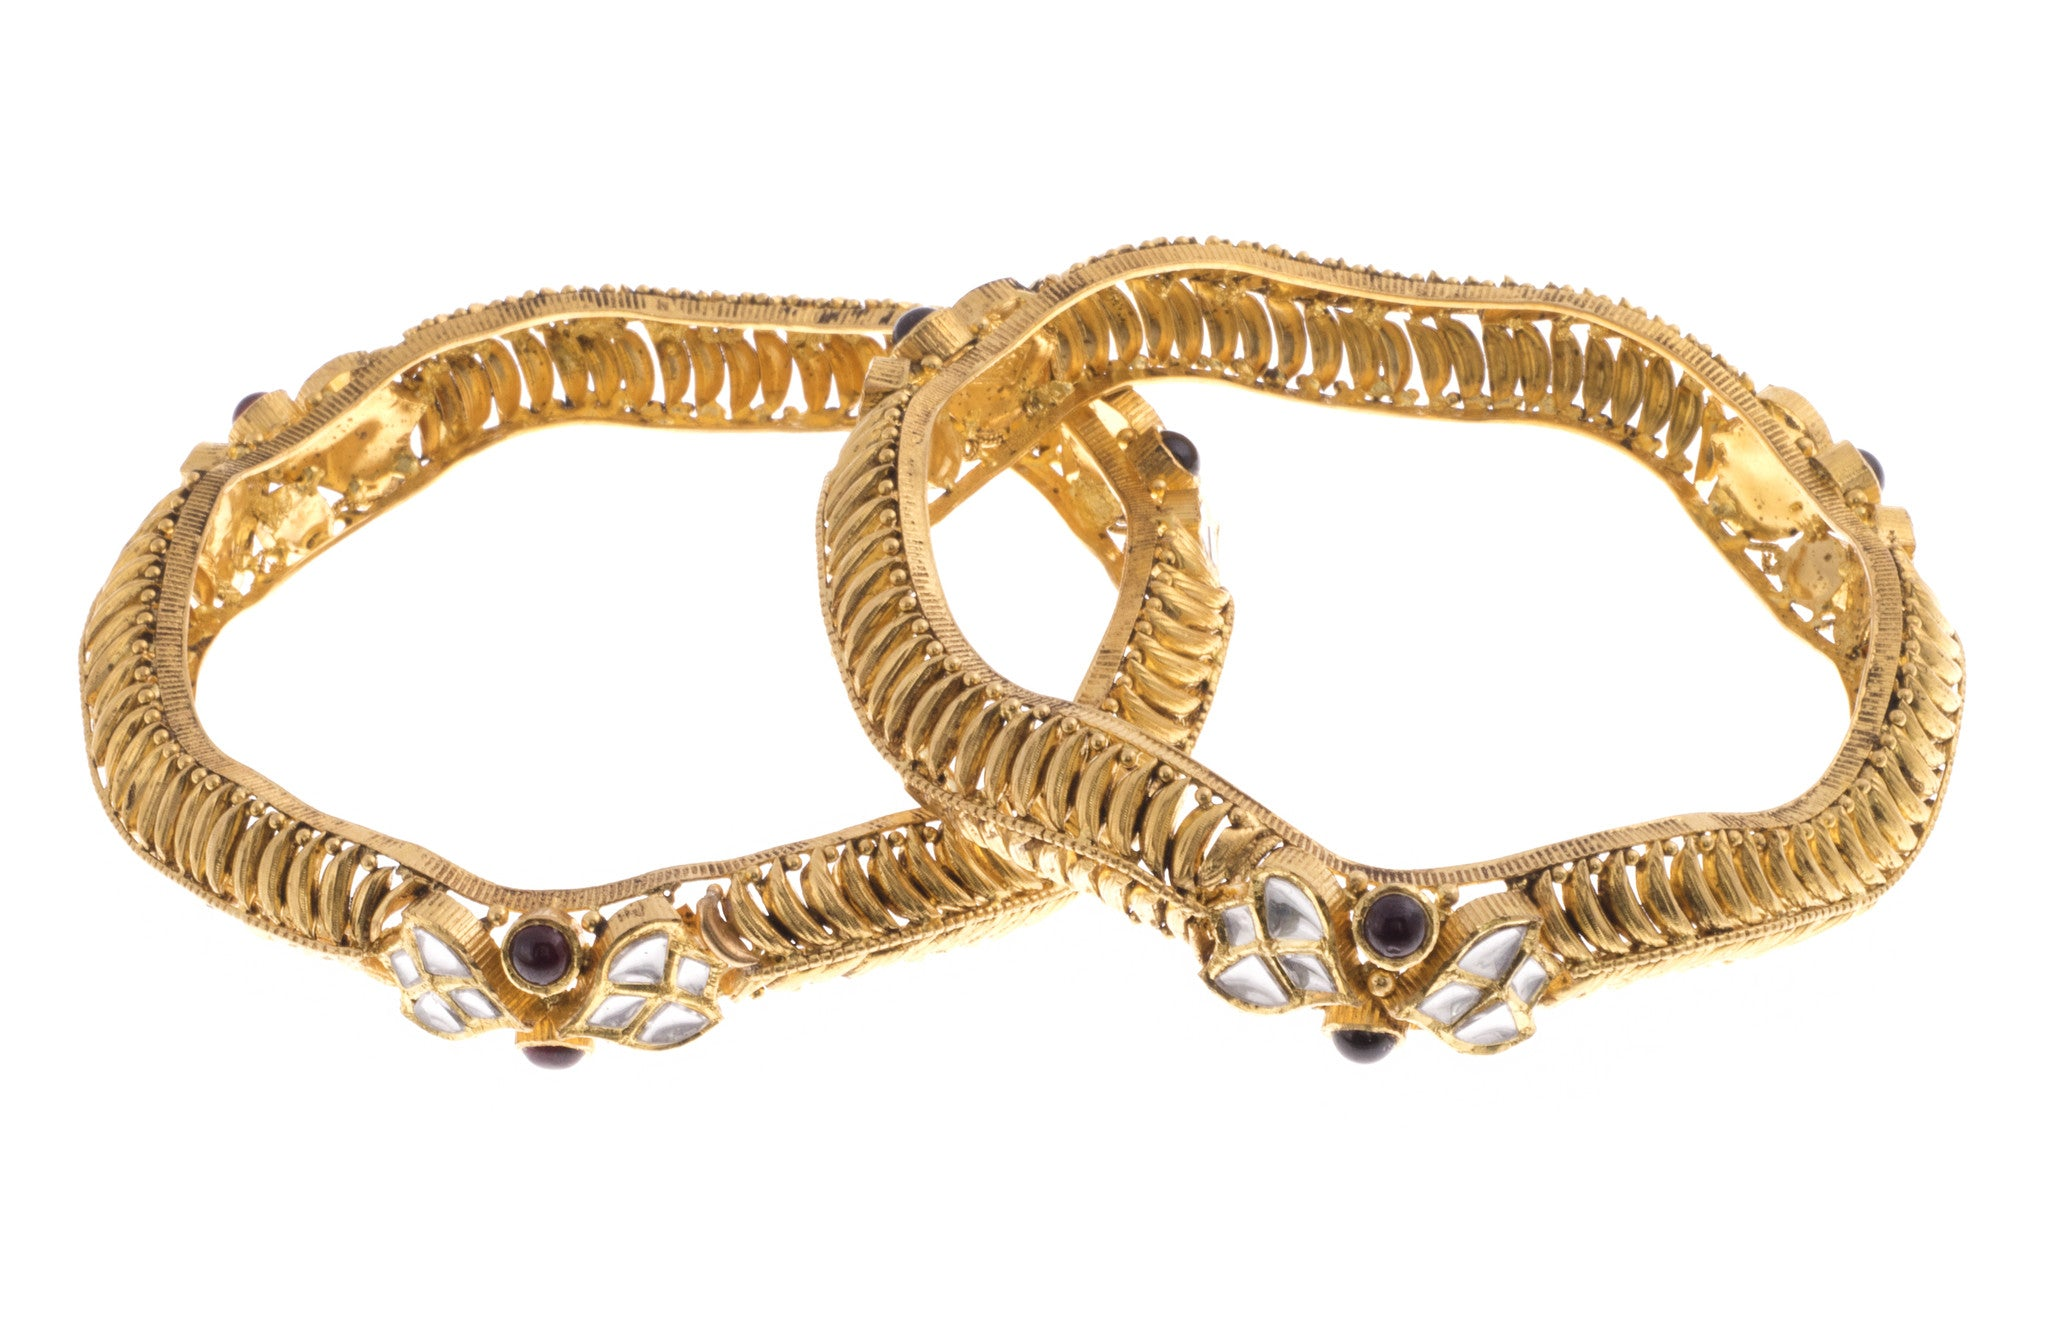 22ct Yellow Gold Antique Look Bangle with Synthetic Stones (G1753), Minar Jewellers - 5